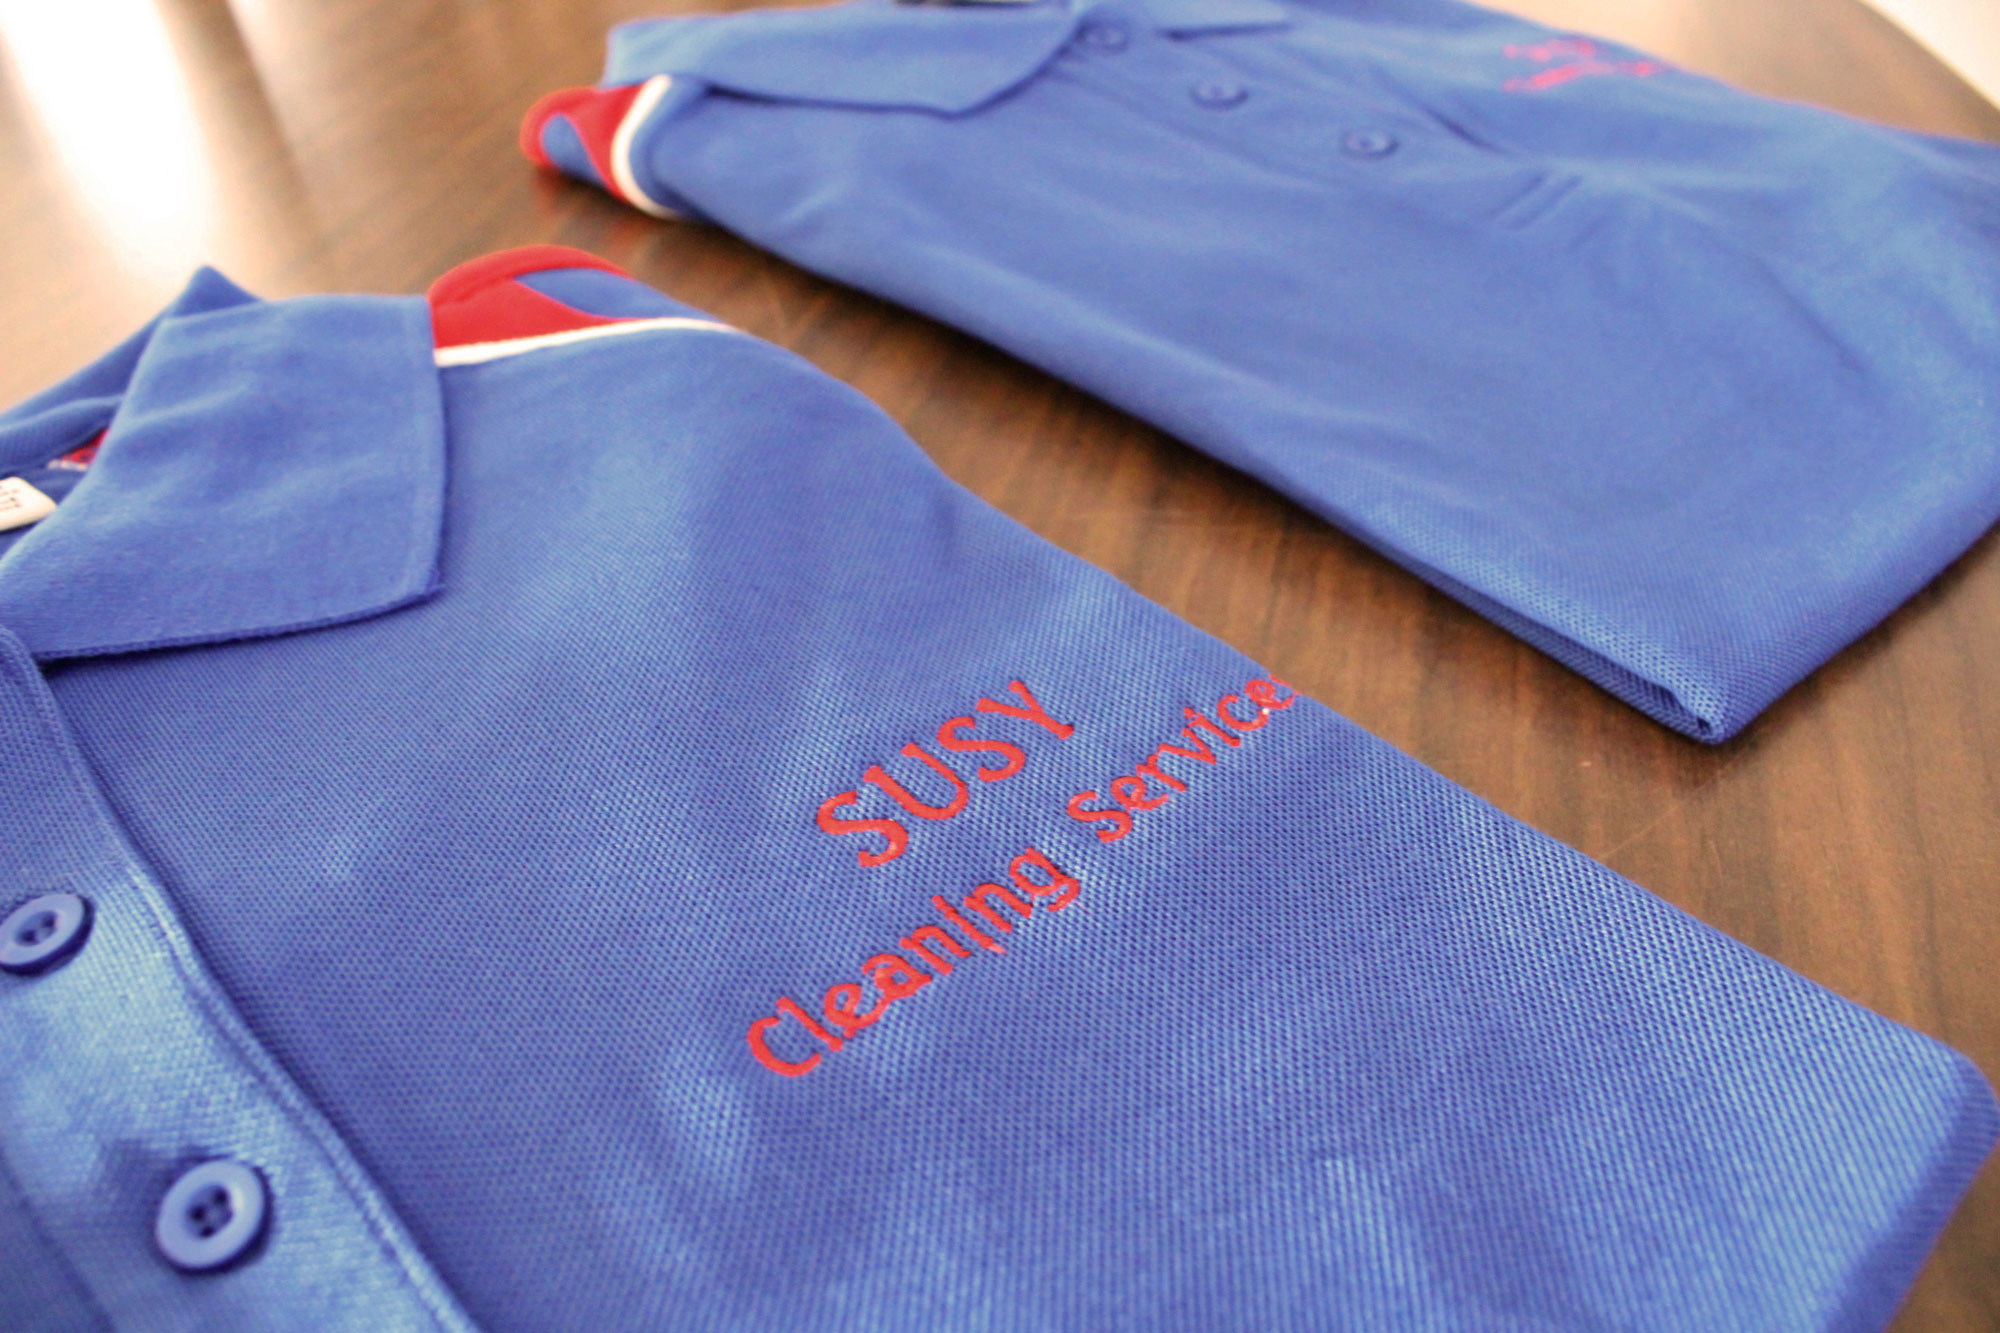 Susy Cleaning Services - About